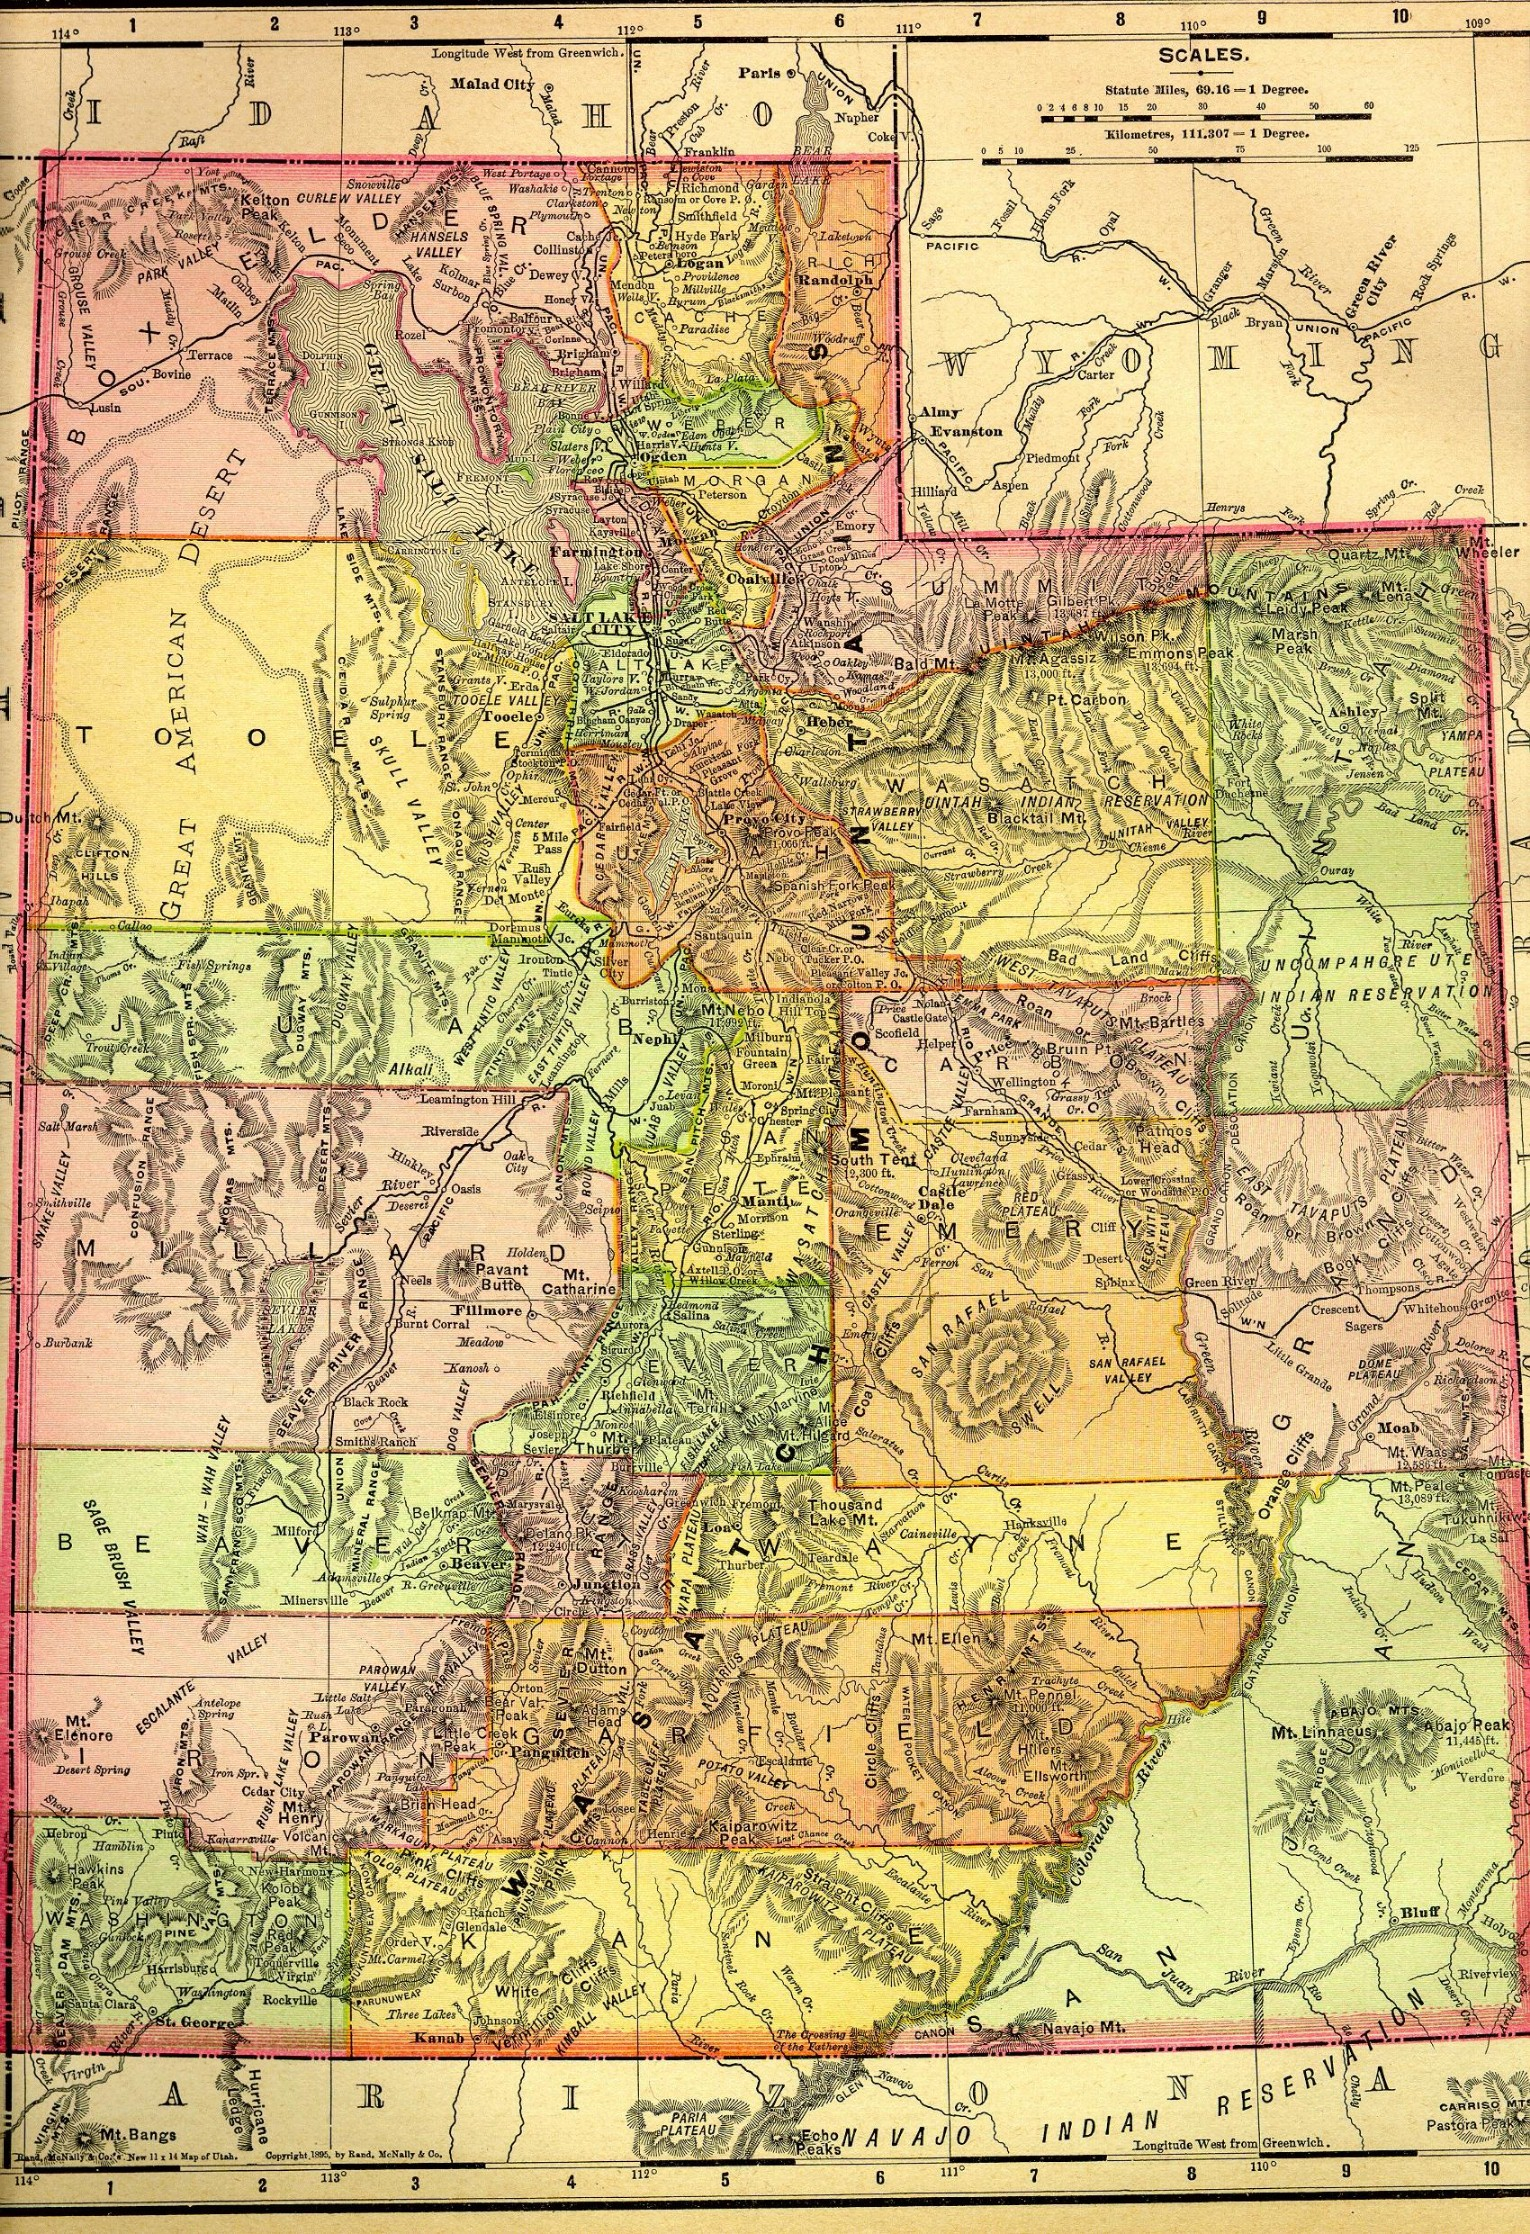 Utah Maps. Utah Digital Map Library. Table of Contents. United ...